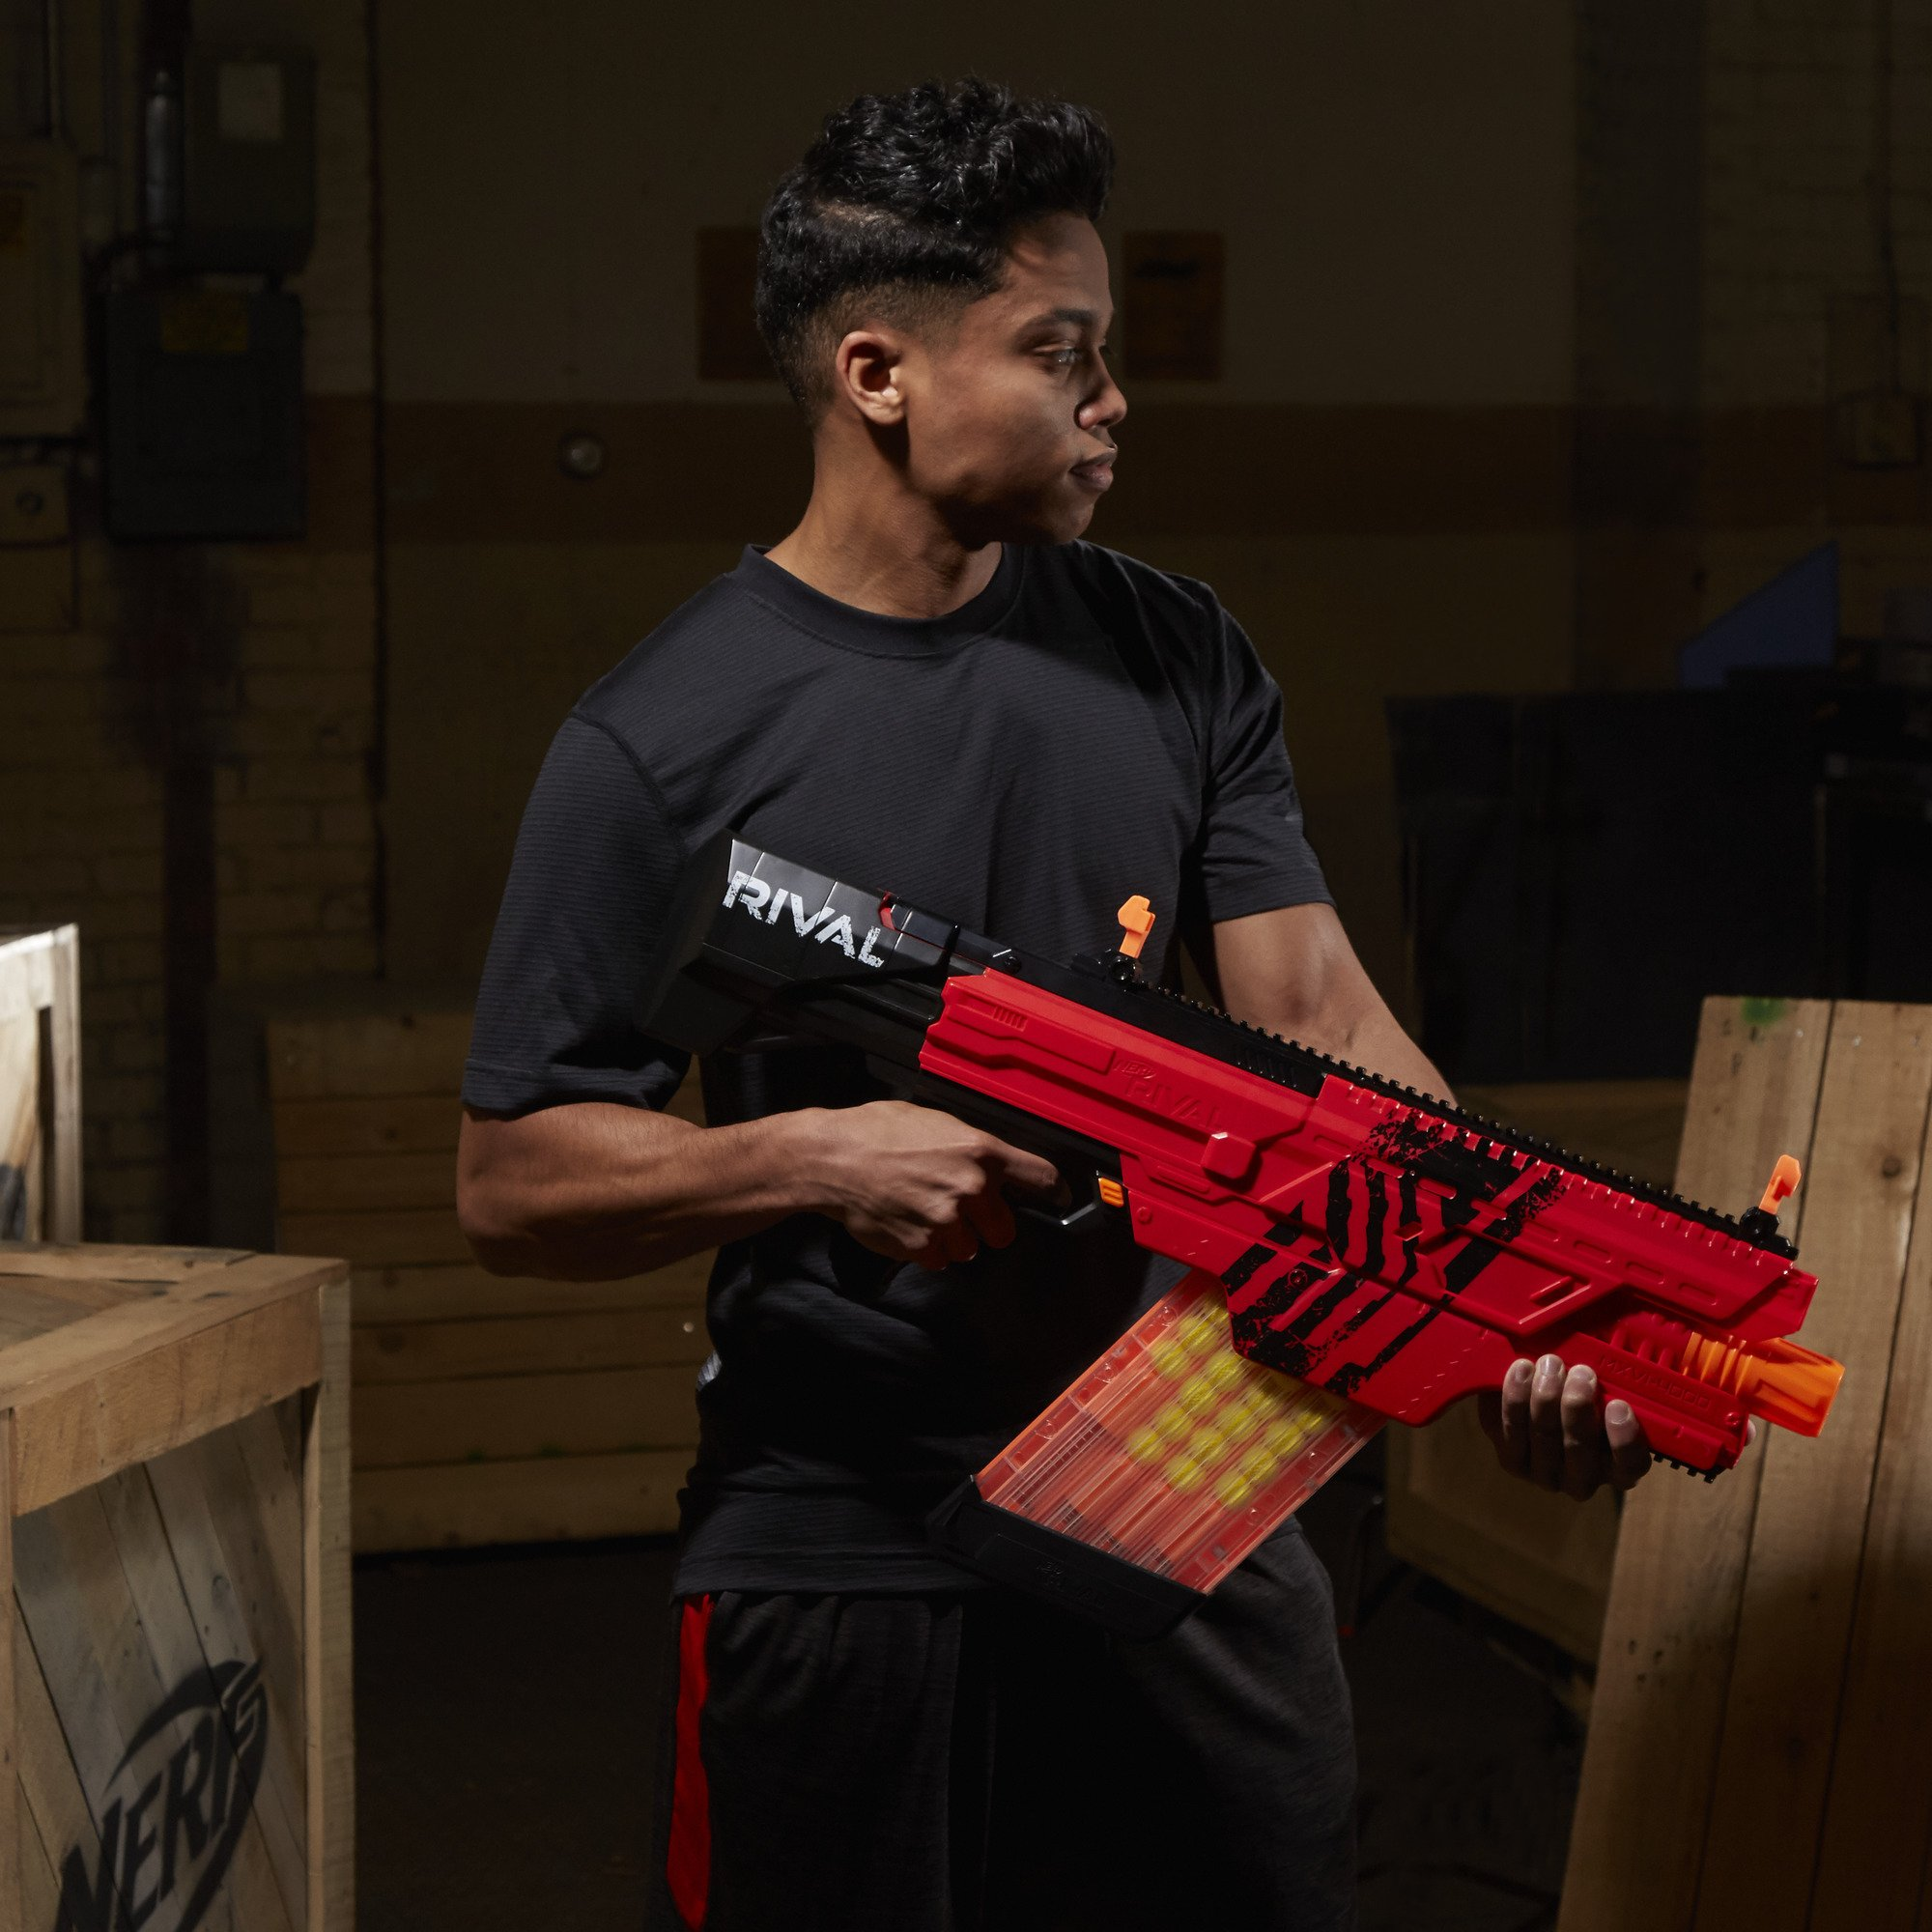 Nerf Rival Khaos MXVI-4000 Blaster (Red) by NERF (Image #18)